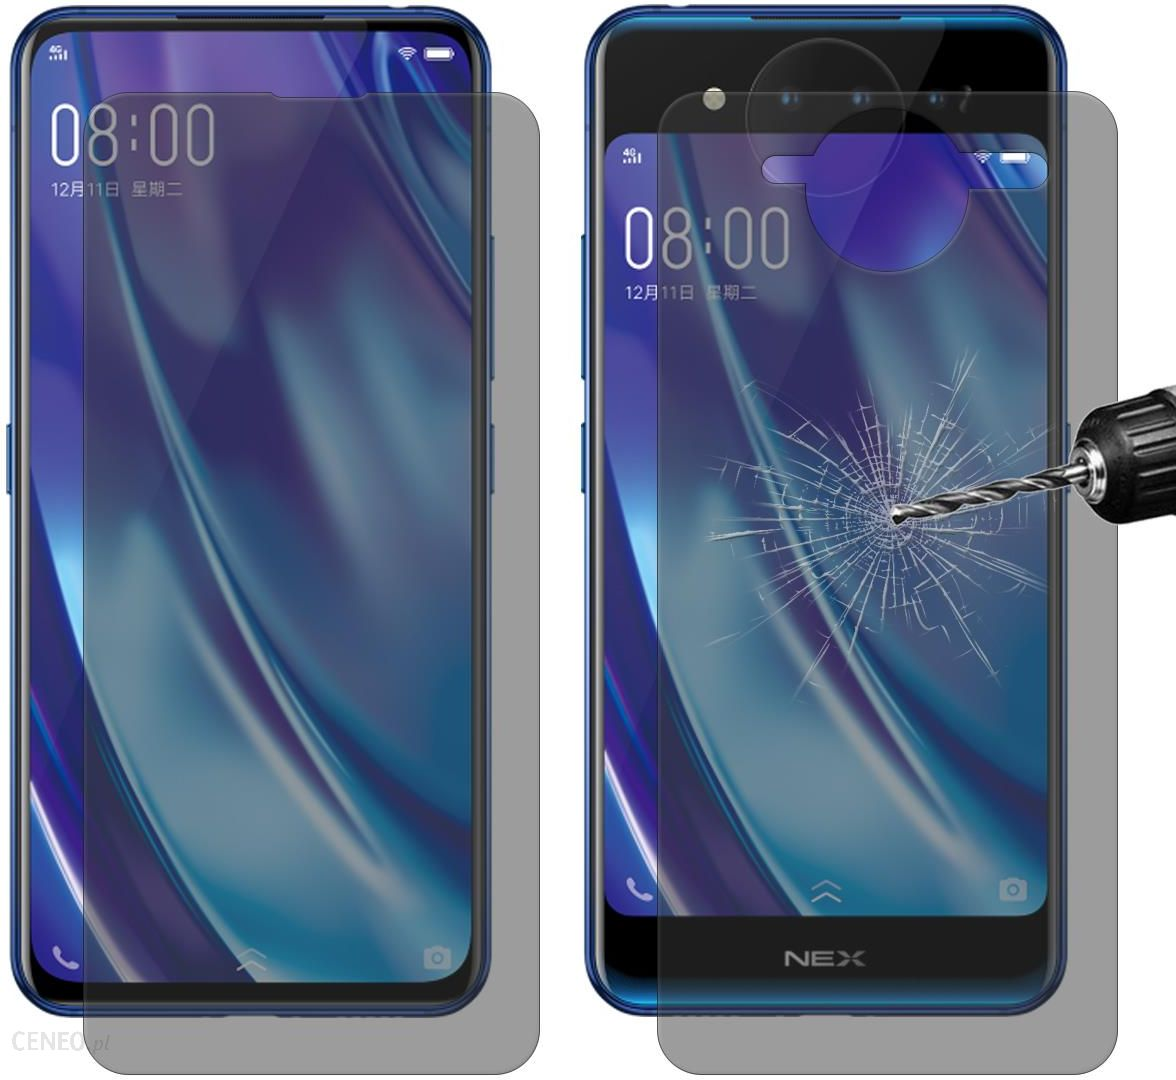 Hat Prince For Vivo Nex Dual Display 2 5d 0 26mm 9h Front Back Anti Peep Tempered Glass Screen Protector Film Ceneo Pl